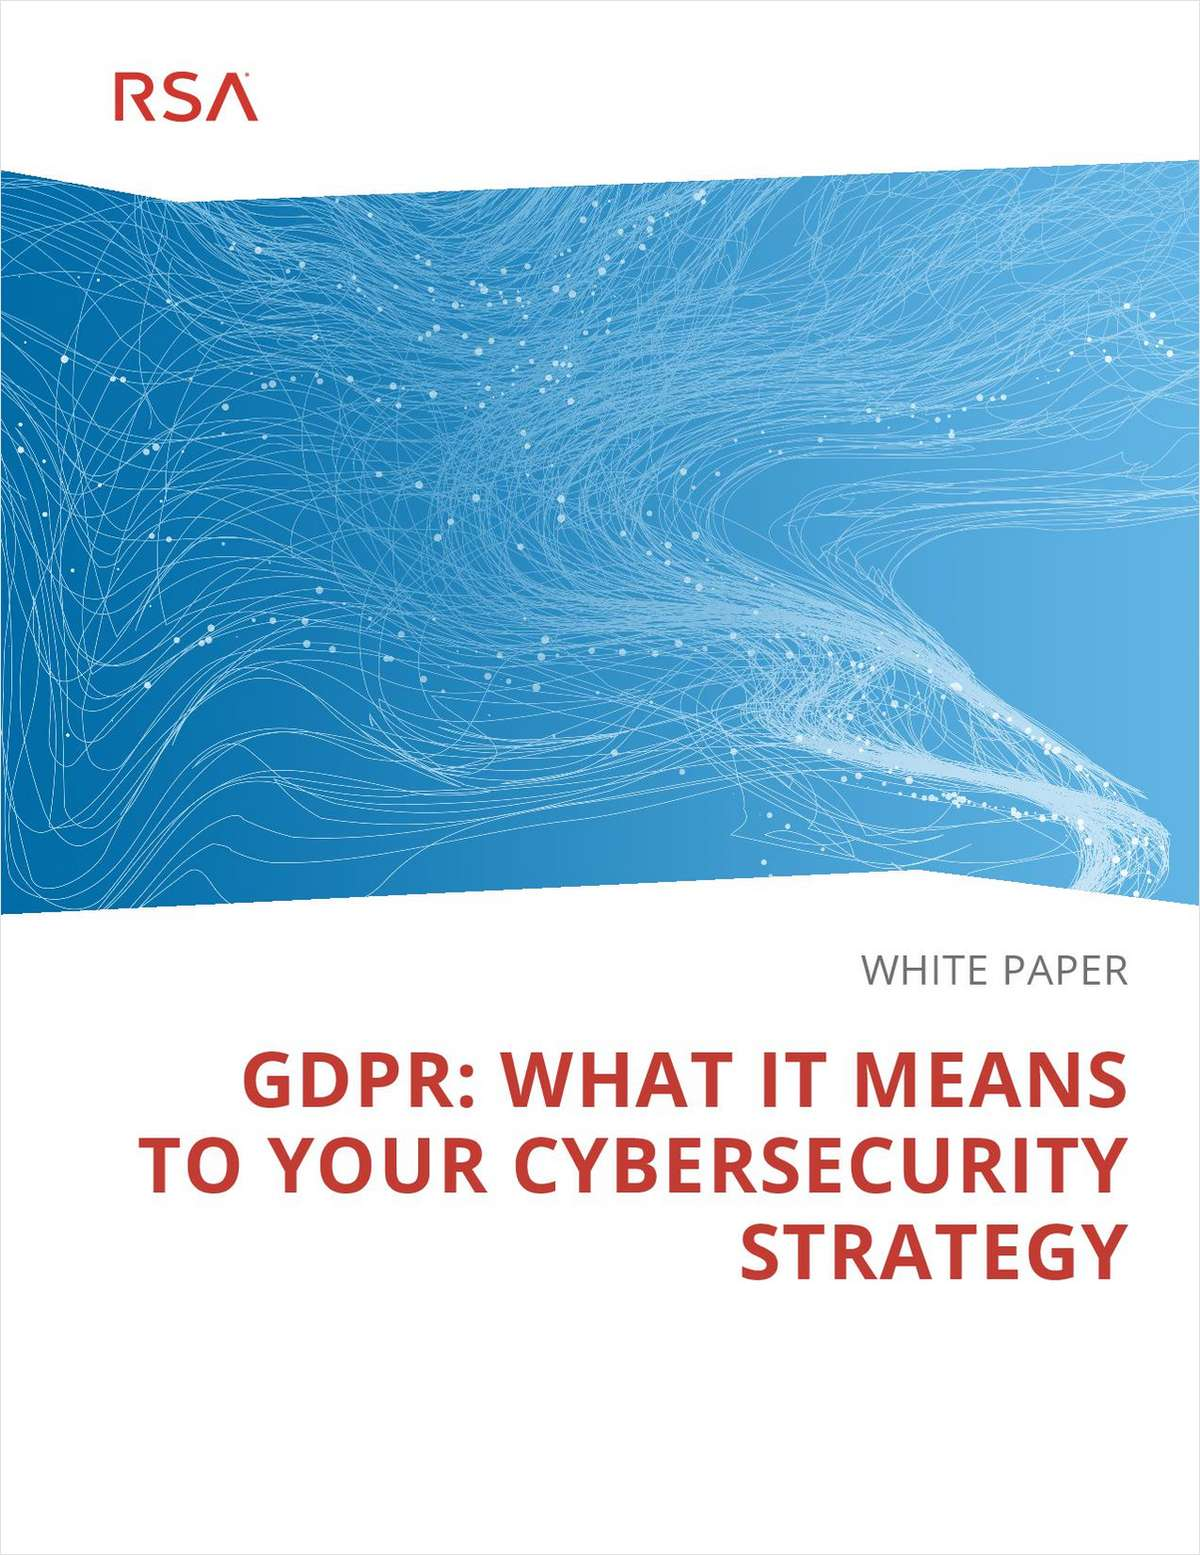 GDPR: What It Means To Your Cybersecurity Strategy